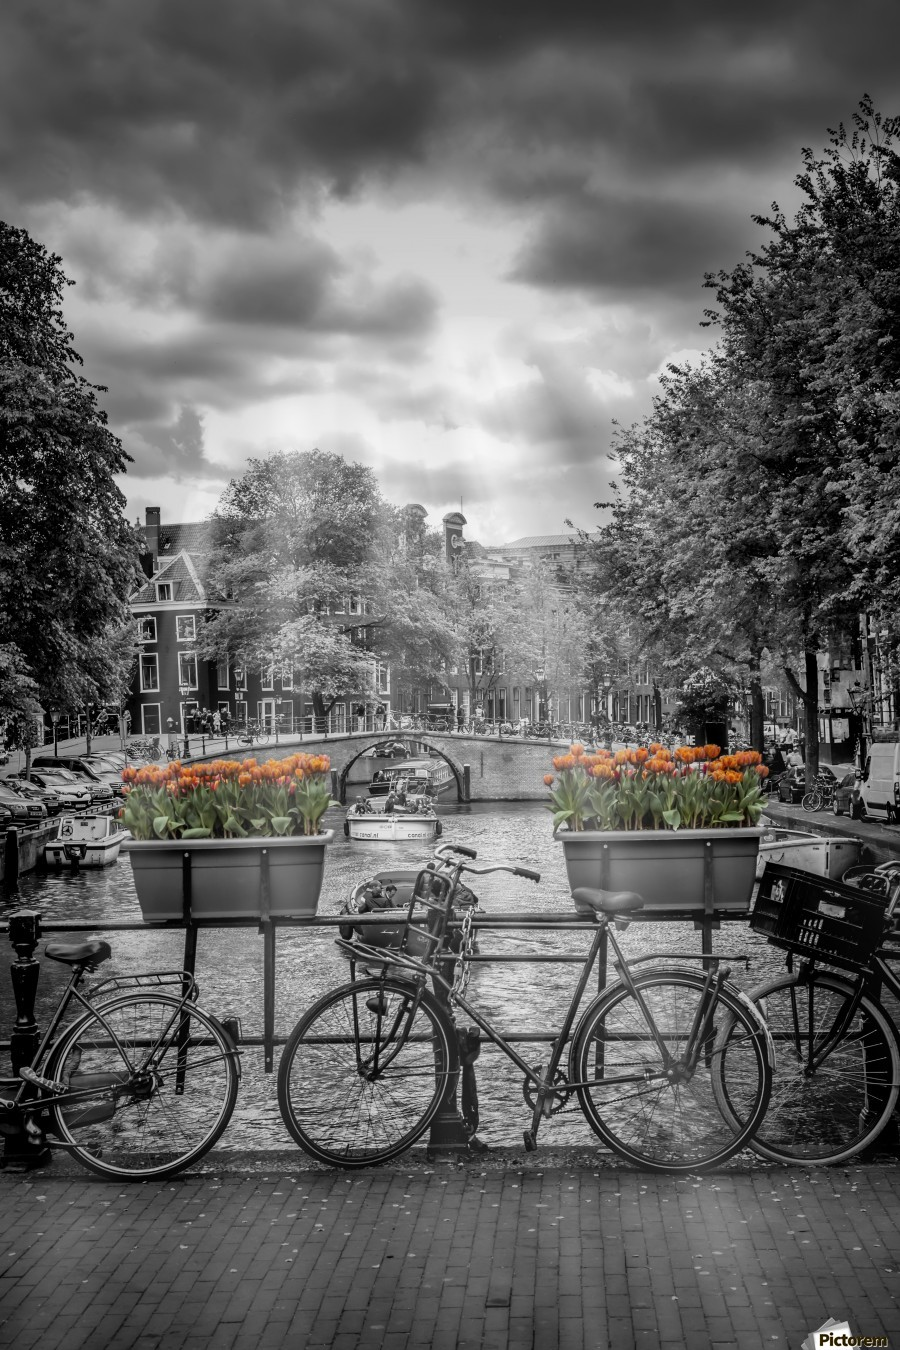 Gentlemens Canal AMSTERDAM , Melanie Viola , amsterdam, architecture, attraction, bicycle, bike, black, black-white, bridge, building, city, clouds, cloudy, colorkey, colourkey, dutch, europe, famous, gentlemens, canal, herengracht, historic, house, landmark, netherlands, old,  town, popular, rays, river, shore, shoreline, sight, sightseeing, sky, sun, sunlight, the, tulip, upright, urban, vertical, vignette, water, waterside, white,